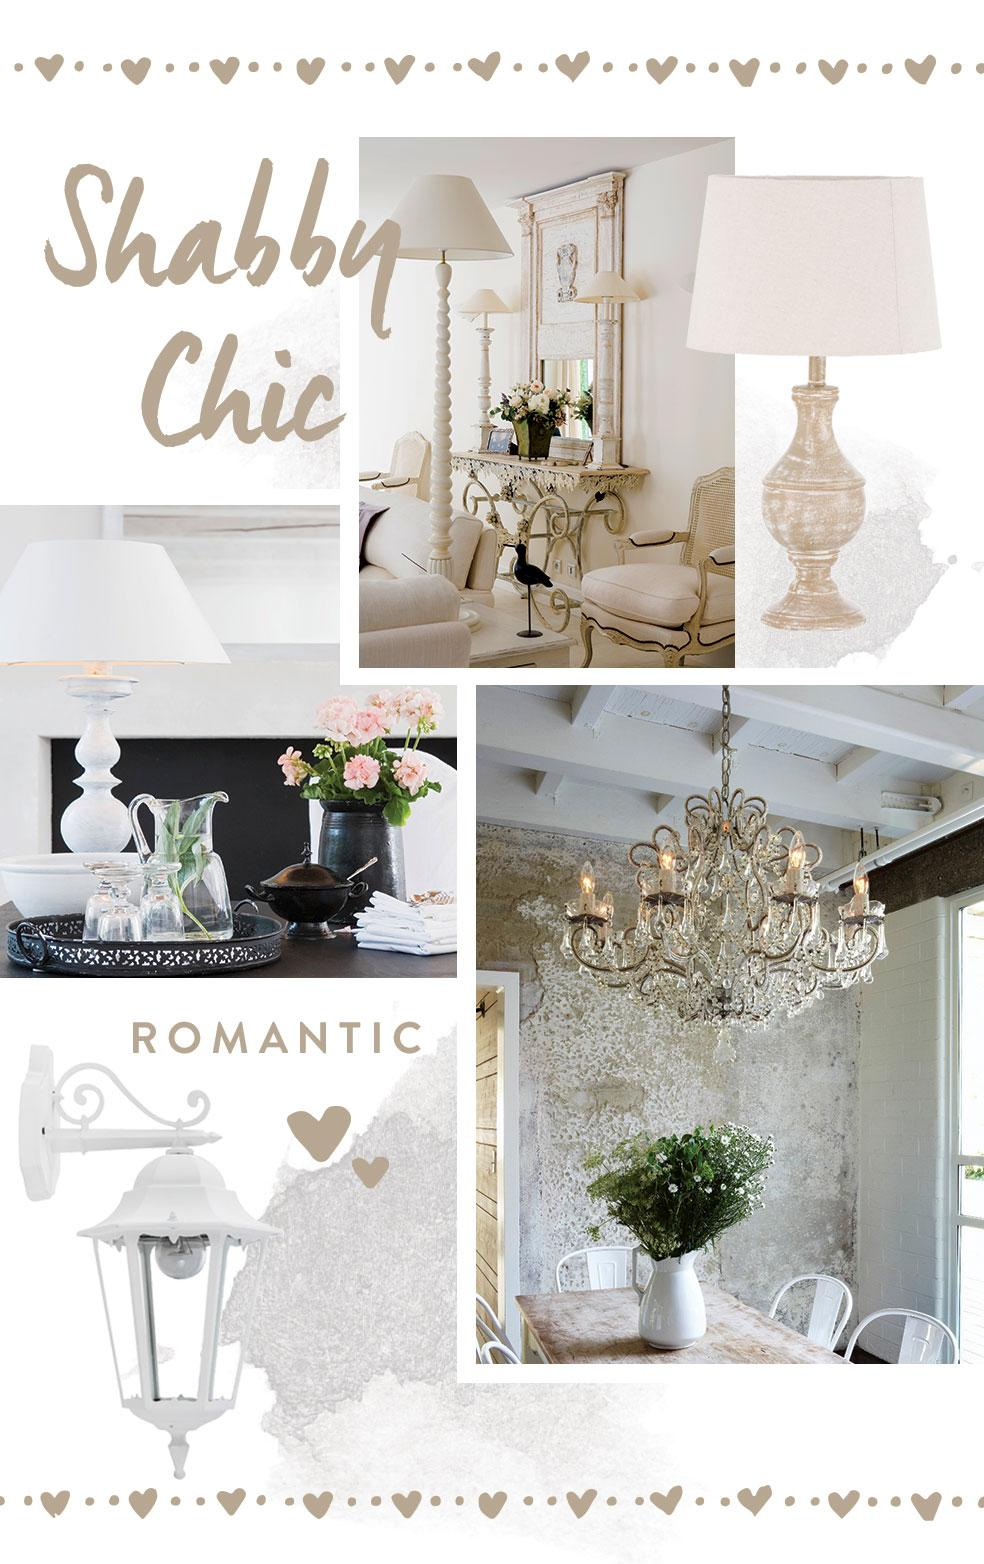 lampen-westwing-shabbychic